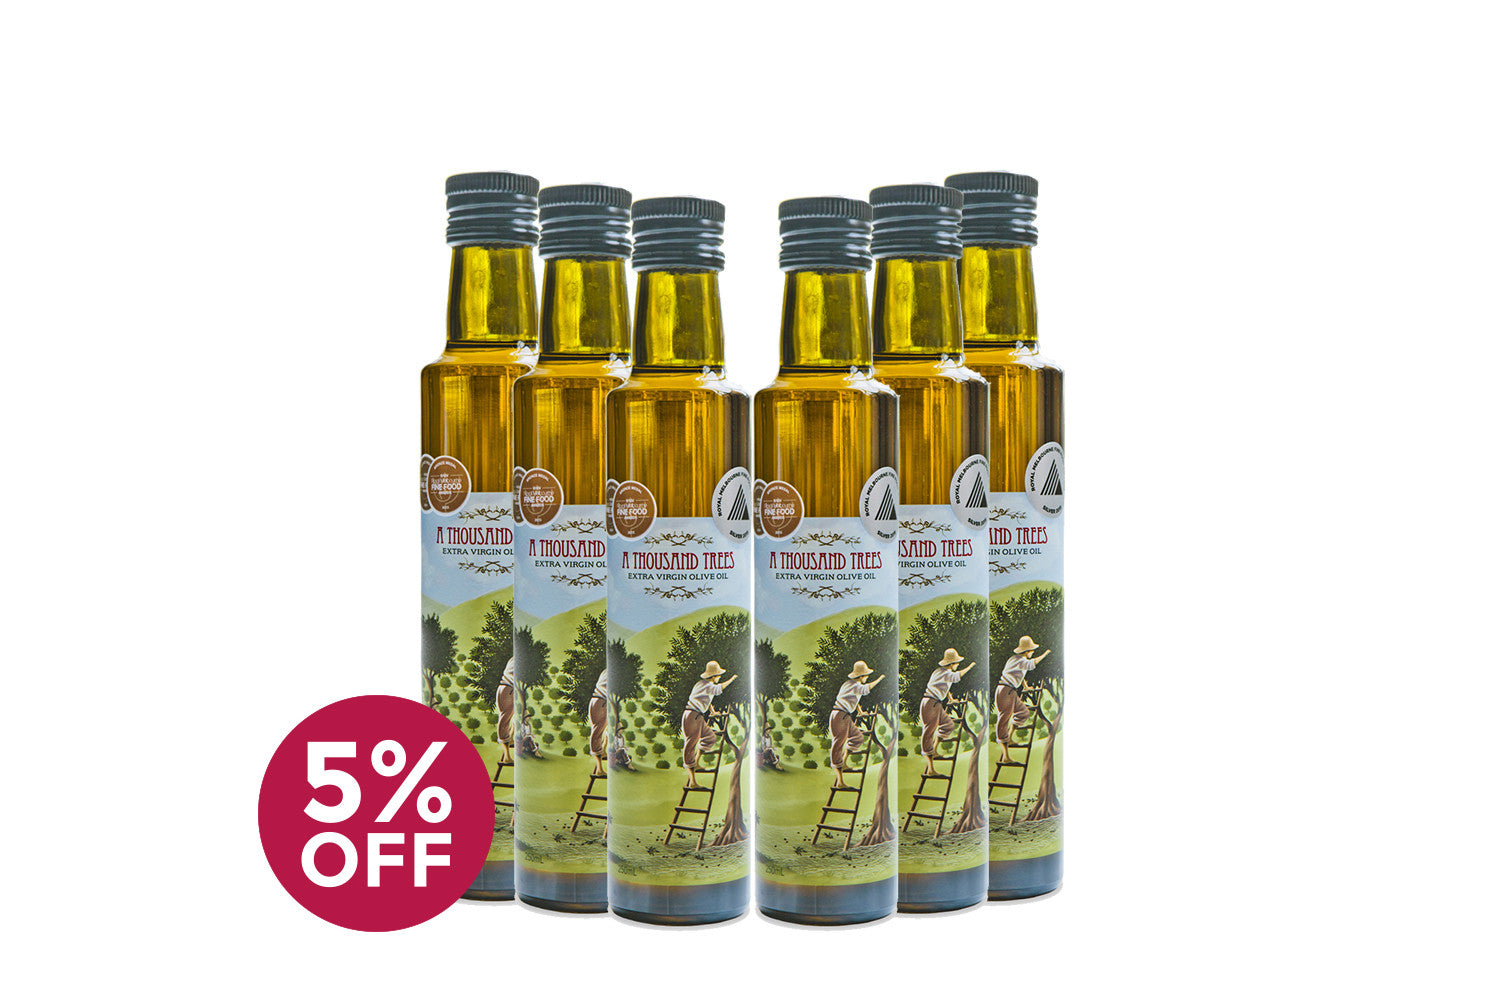 250ML Extra Virgin Olive Oil Six Pack